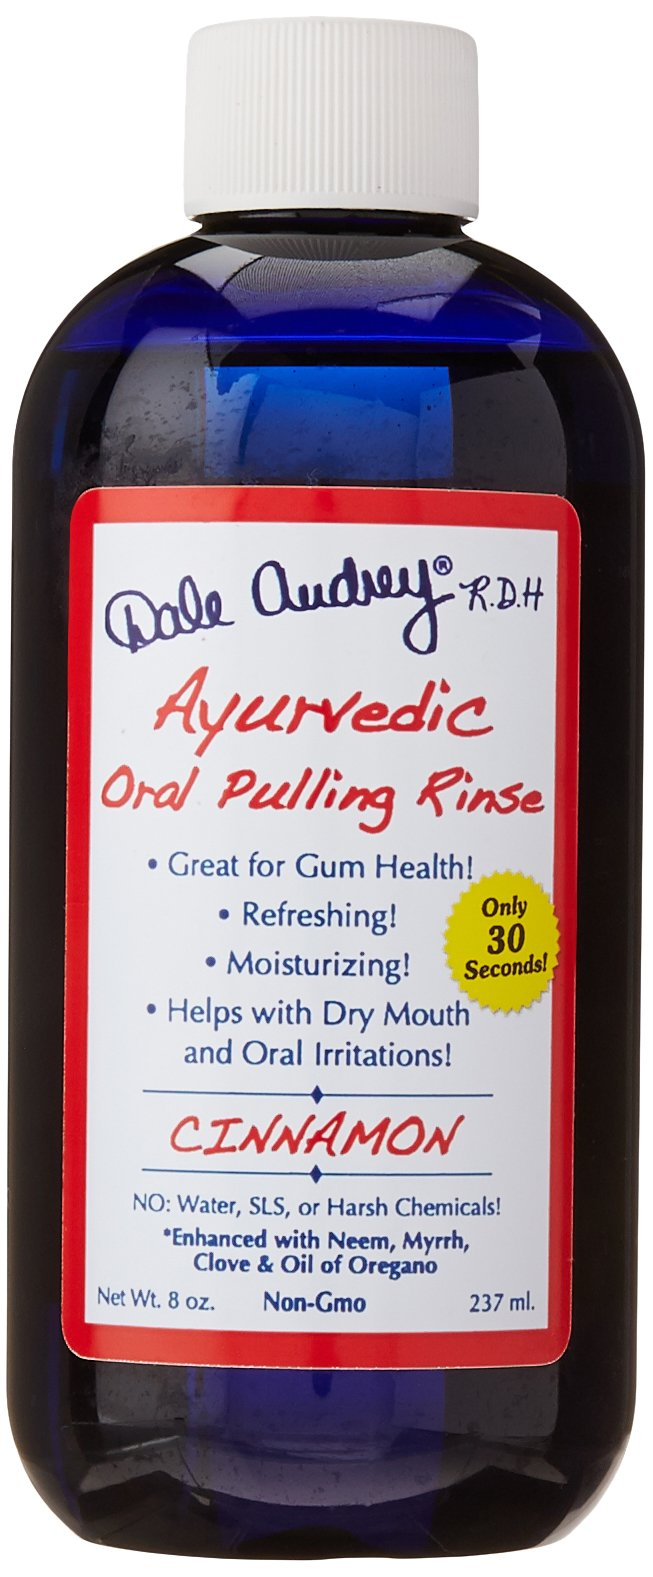 Ayurvedic Oral Pulling Rinse By Dale Audrey, Cinnamon ,With Neem, Myrrh, Clove & Oil of Oregano. 8oz (1.5 Month-1tsp) Natural & Organic